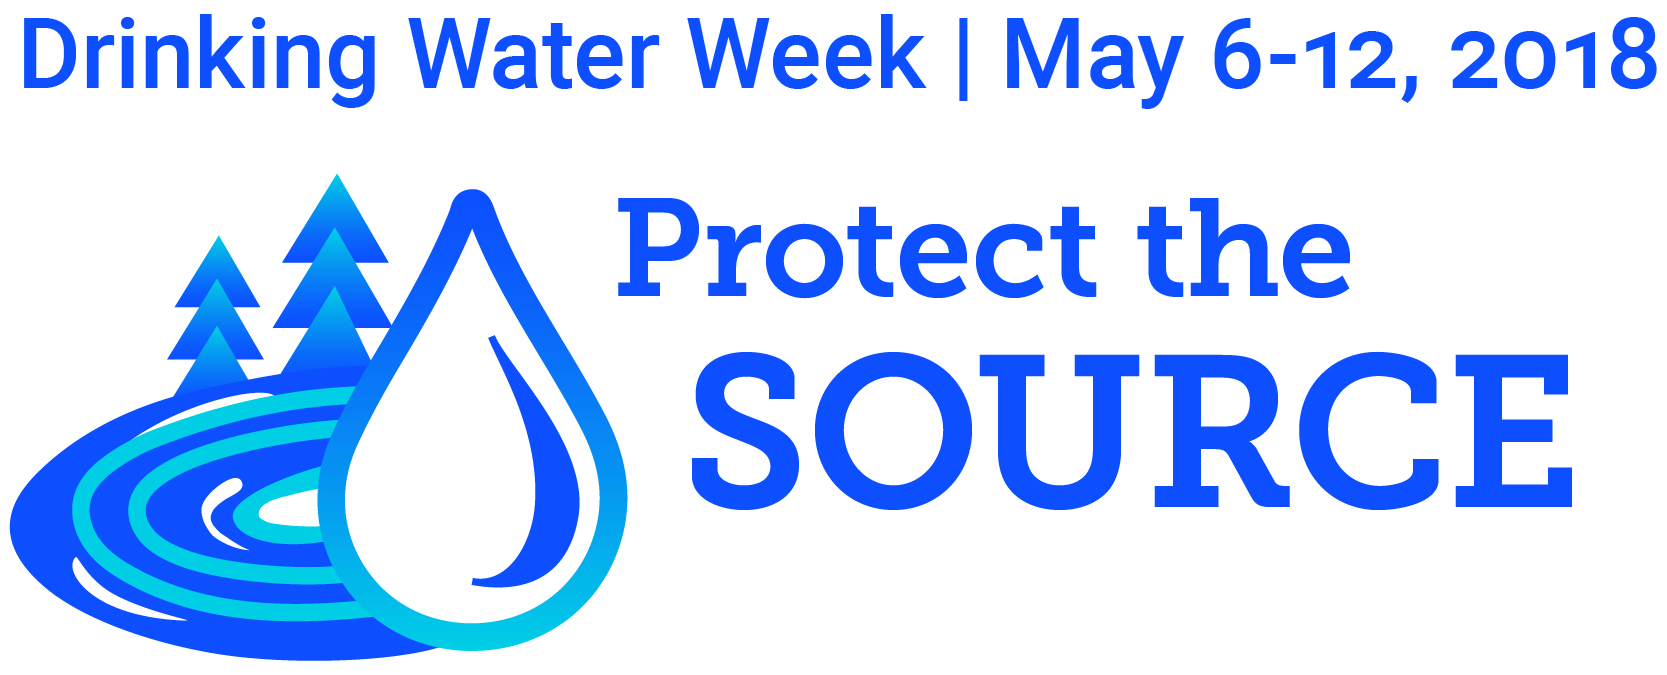 Drinking water week 2018, Protecting the Source